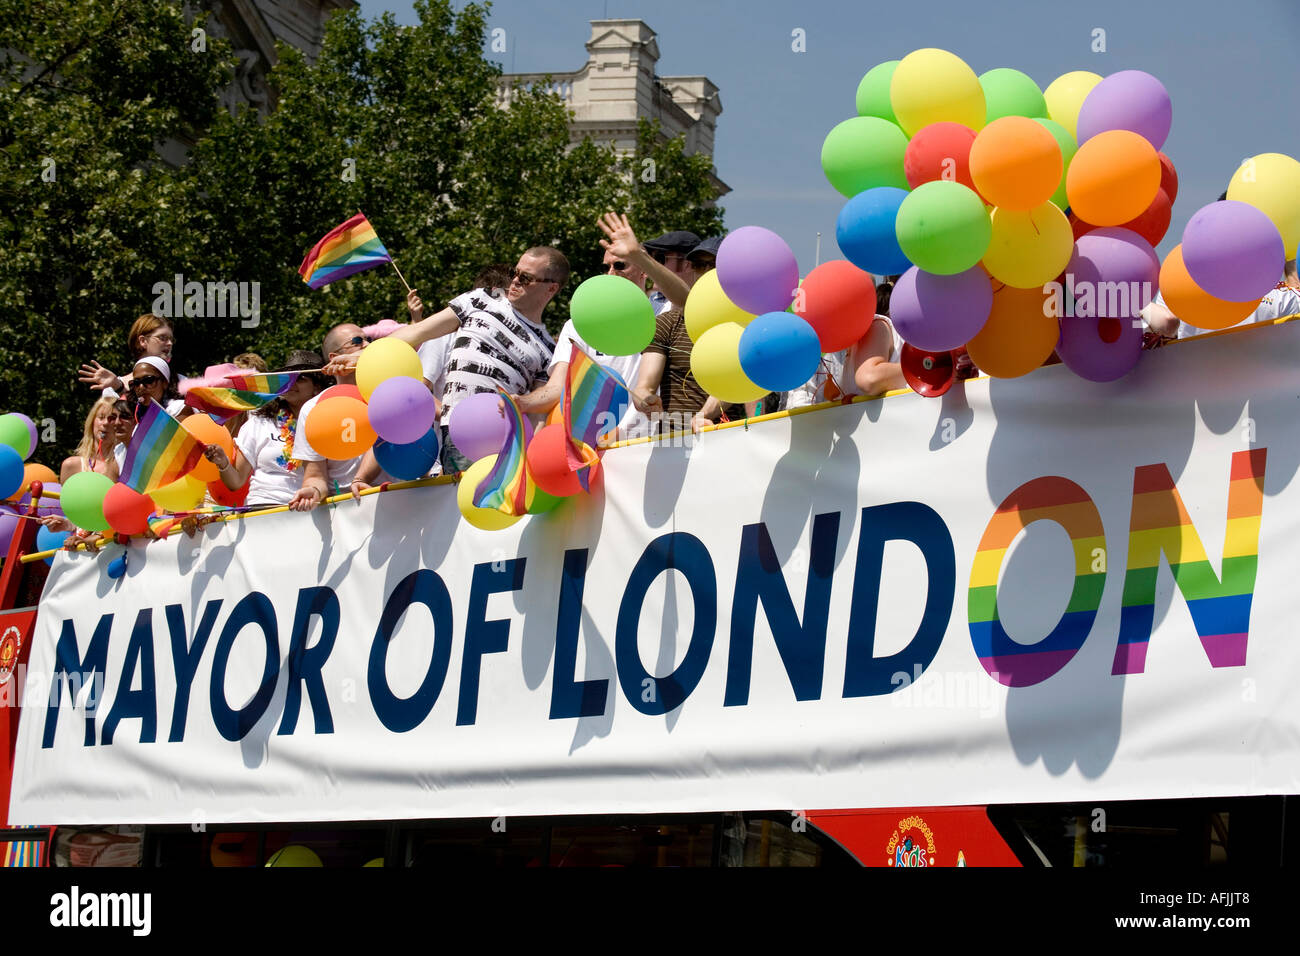 The double deck bus sponsored by the Mayor of London at the EuroPride London - Stock Image